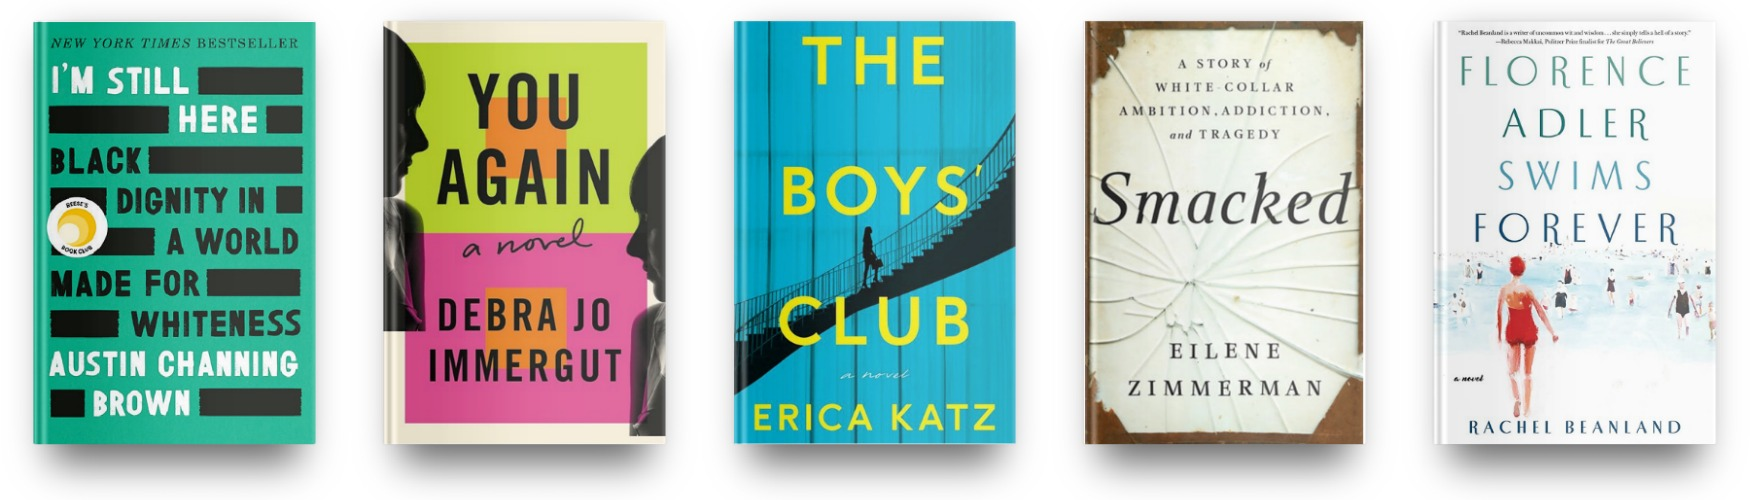 I'm Still Here by Austin Channing Brown, You Again by Debra Jo Immergut, The Boys' Club by Erica Katz, Smacked by Eilene Zimmerman and Florence Adler Swims Forever by Rachel Beanland